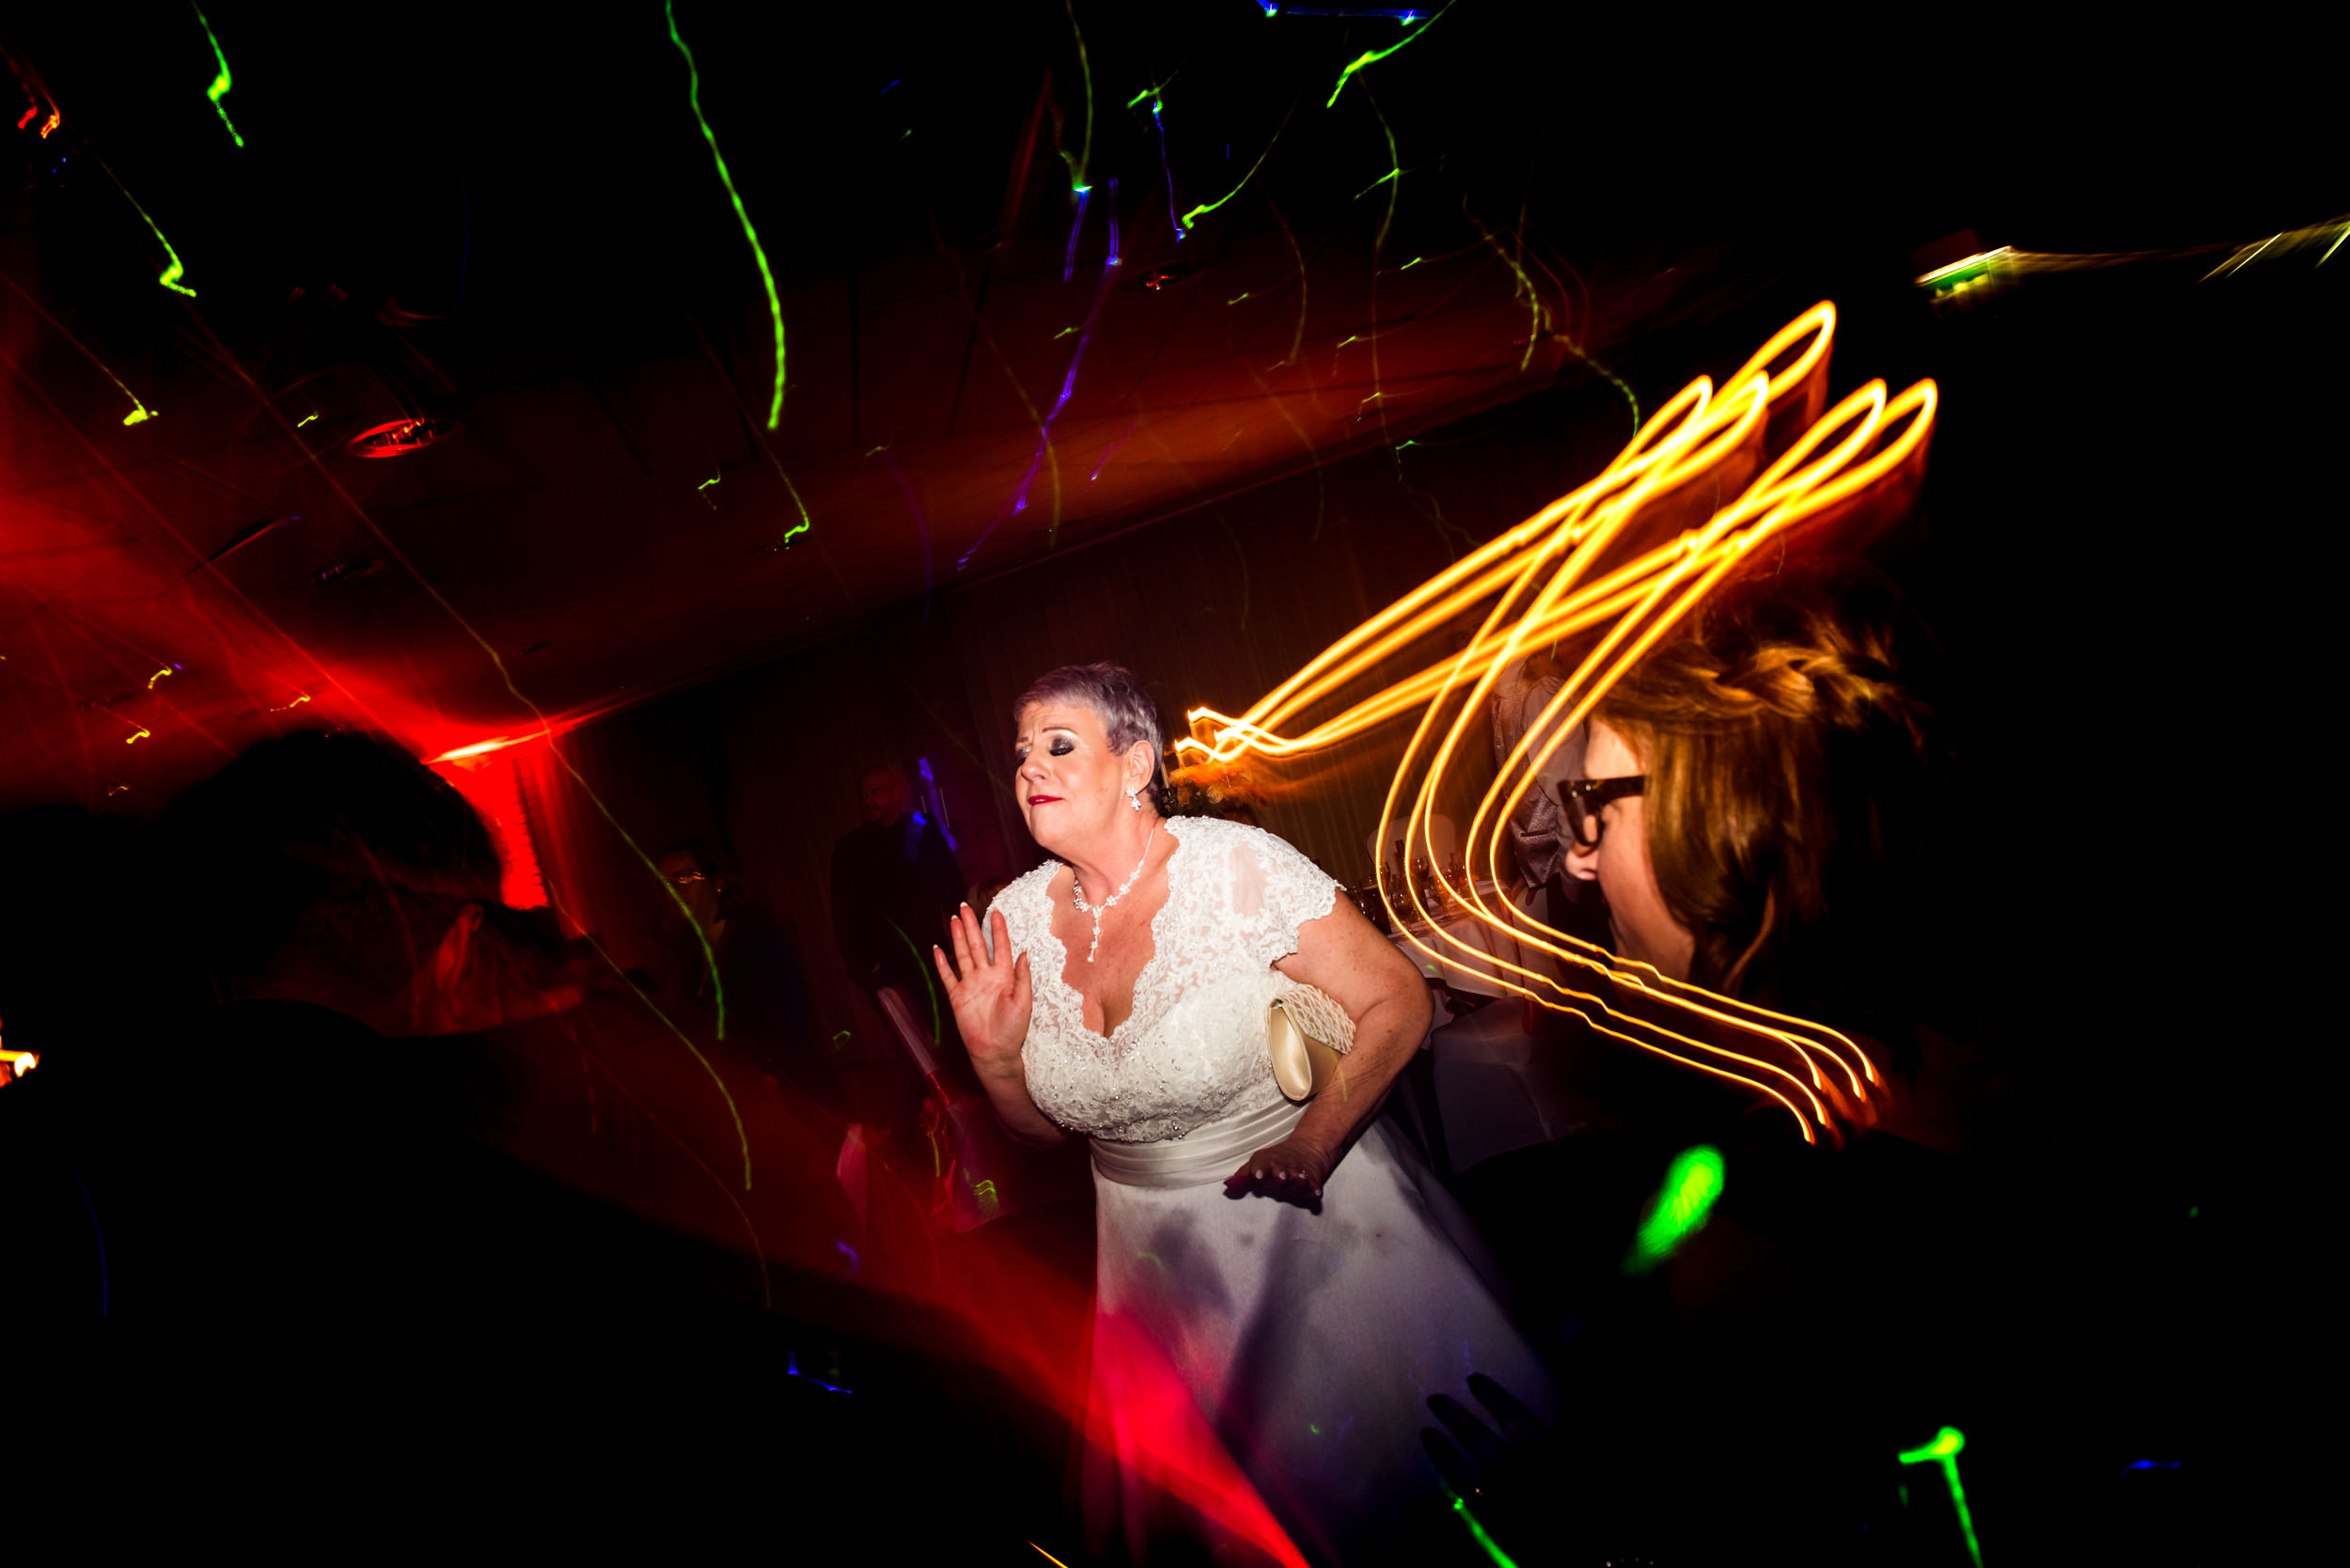 The Bride dancing wildly at the evening reception